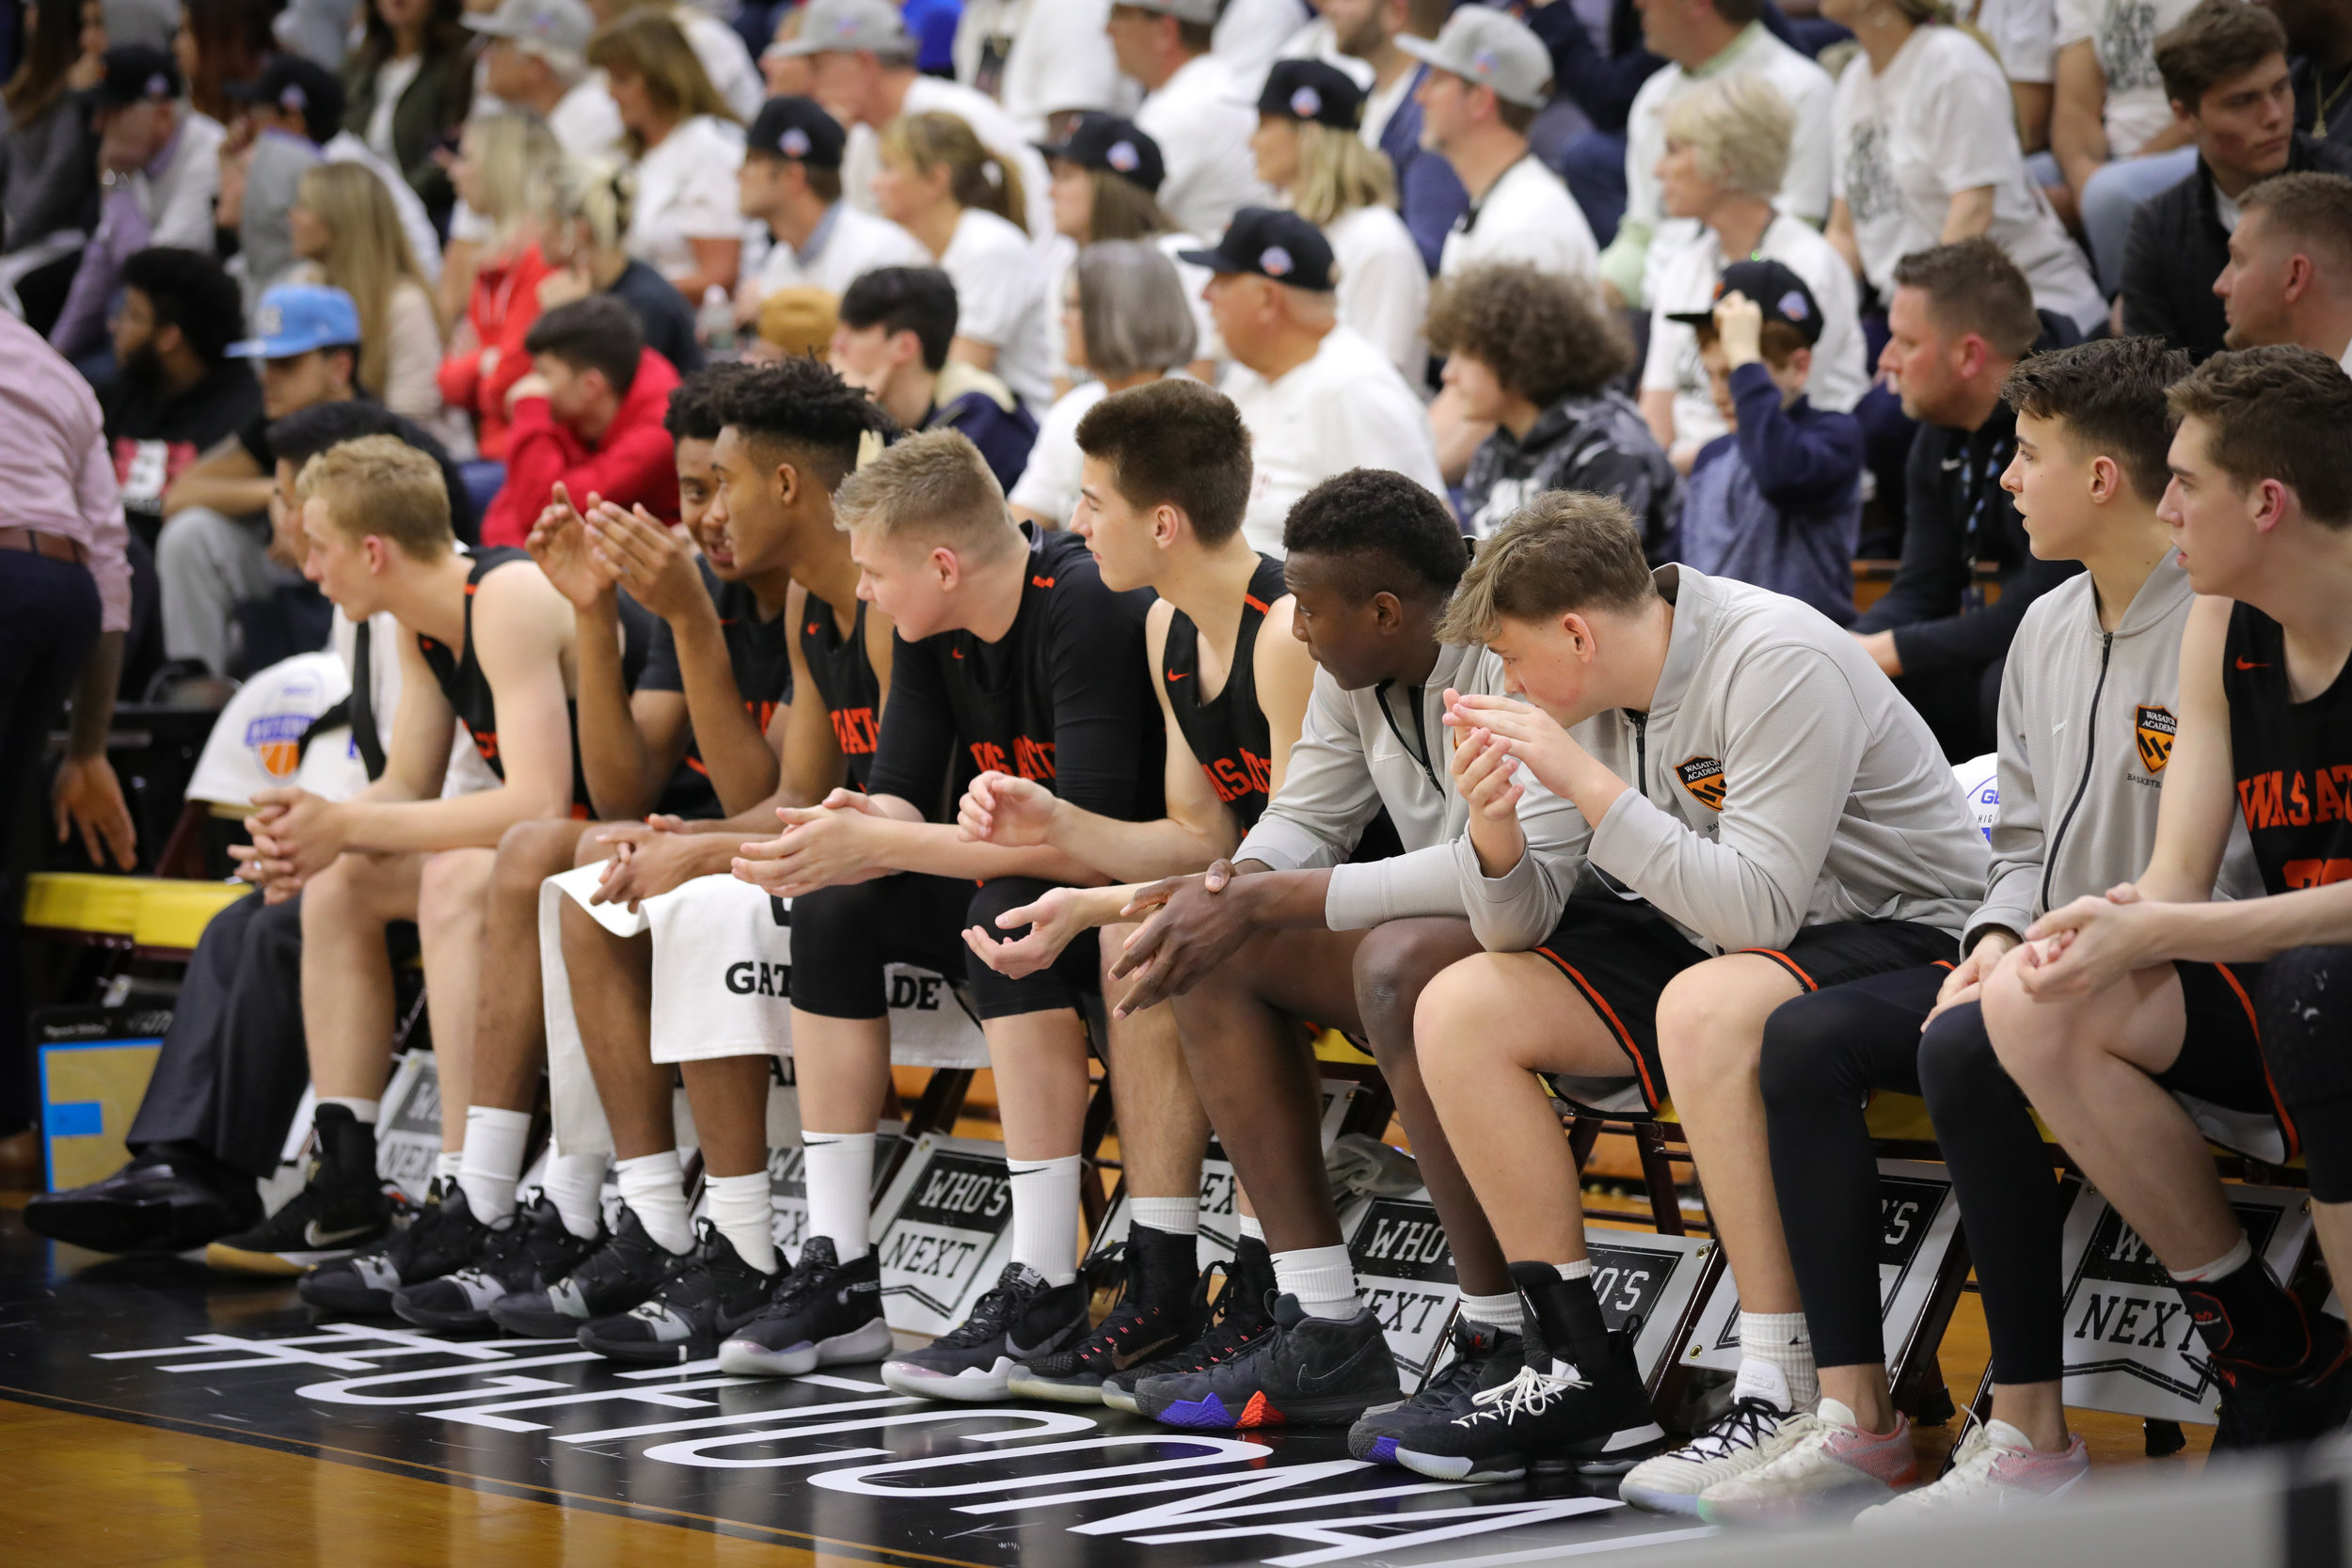 BBall_Geico_Nationals_2019 (53 of 59).jpg